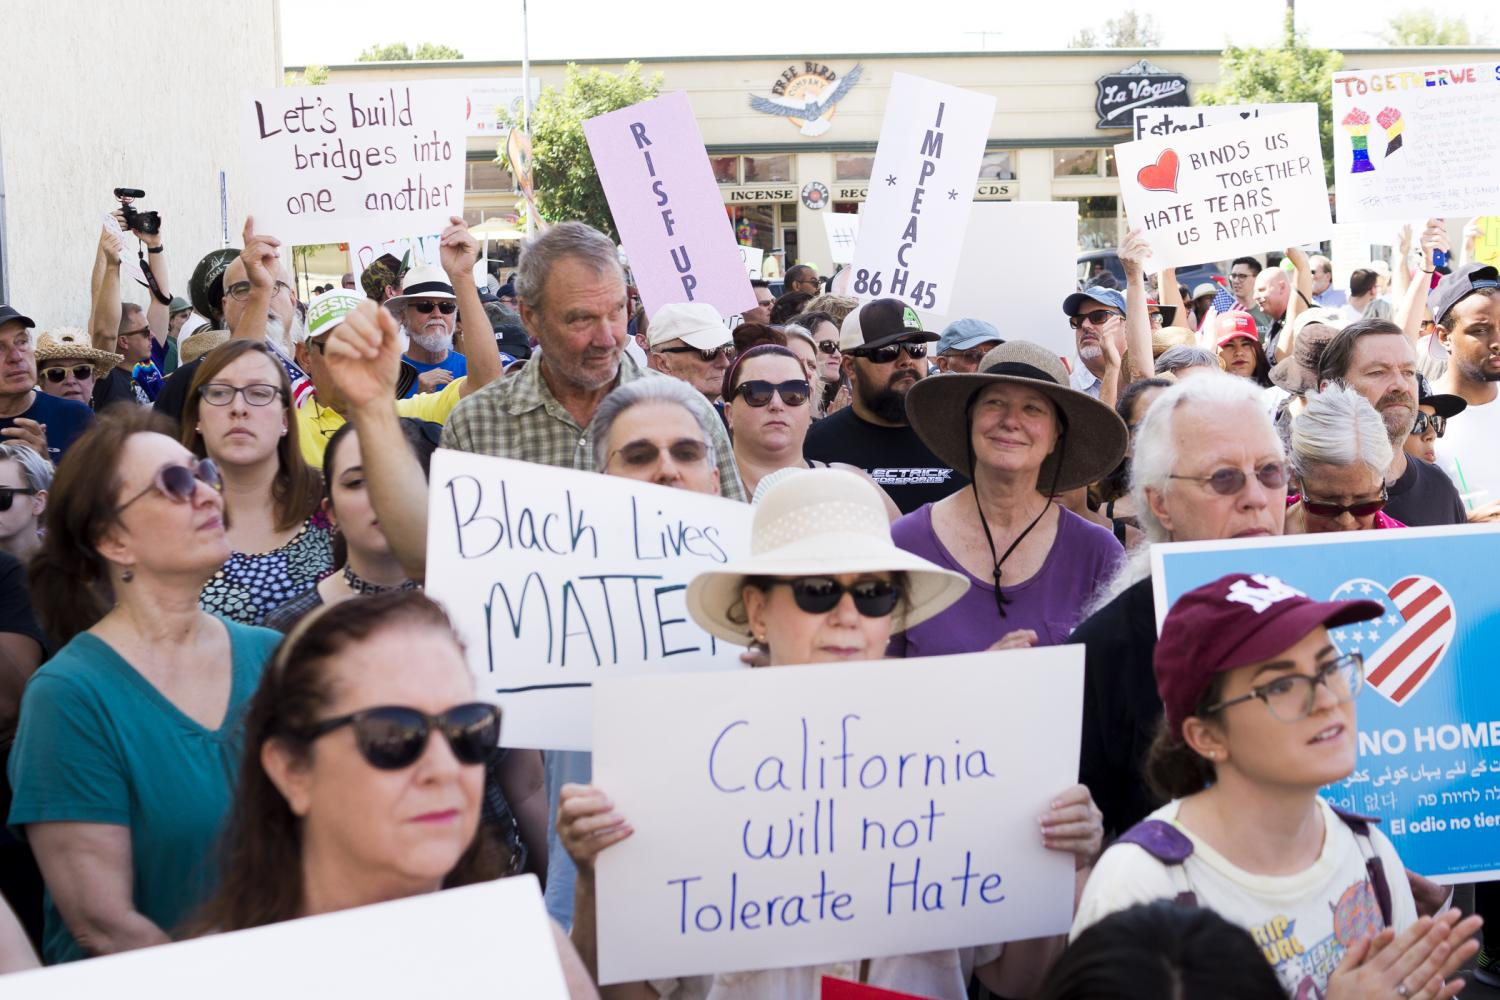 Protesters+gather+during+%22Counter+Rally+Against+Hate%22+held+in+Fresno%27s+Tower+District+on+Saturday%2C+Aug.+26%2C+2017.+The+rally+is+among+the+other+anti-white+supremacy+rallies+happening+across+the+country+in+response+to+the+events+in+Charlottesville.